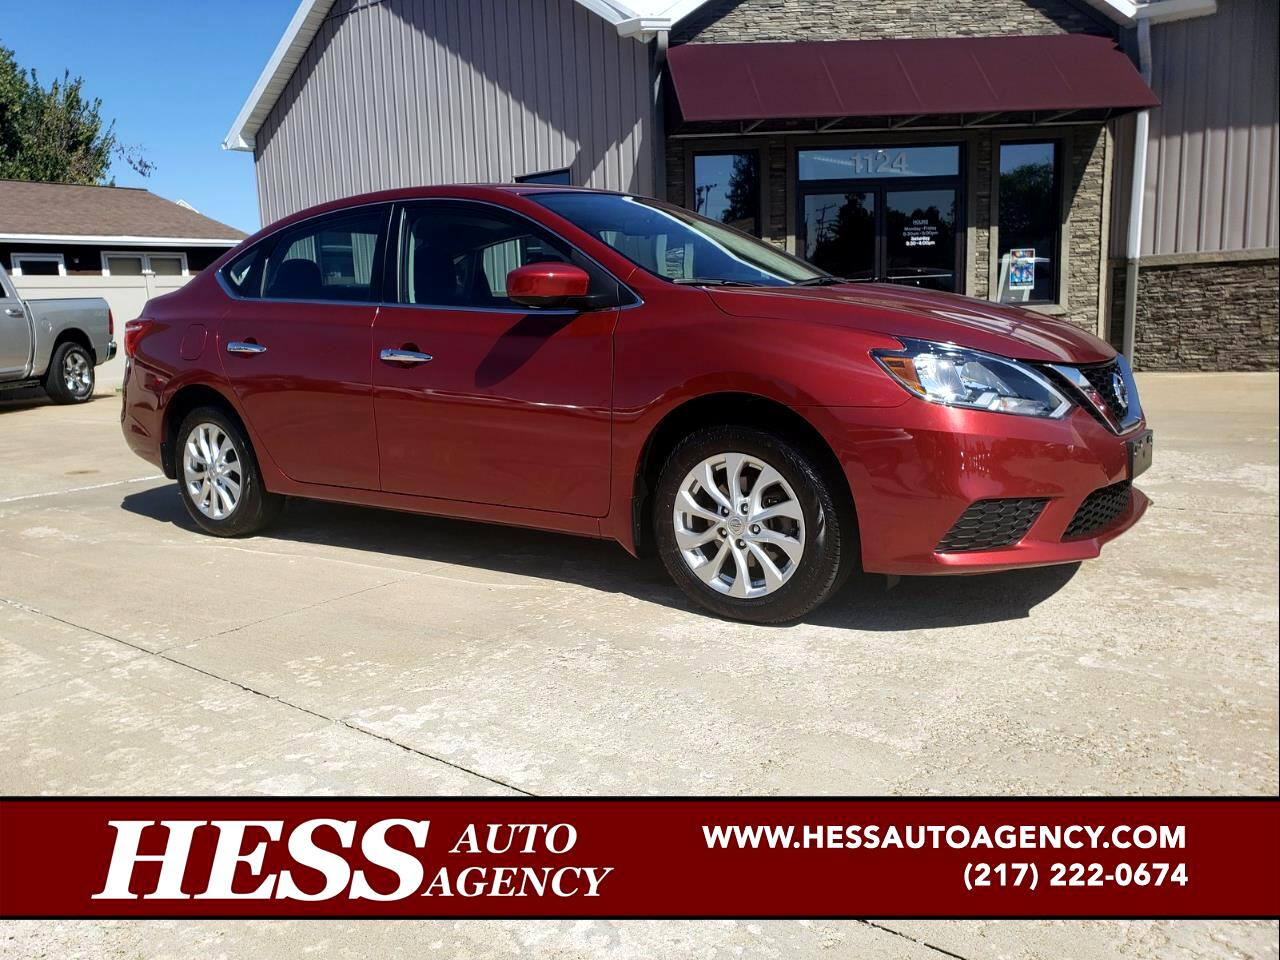 2016 Nissan Sentra SV w/ Style Package